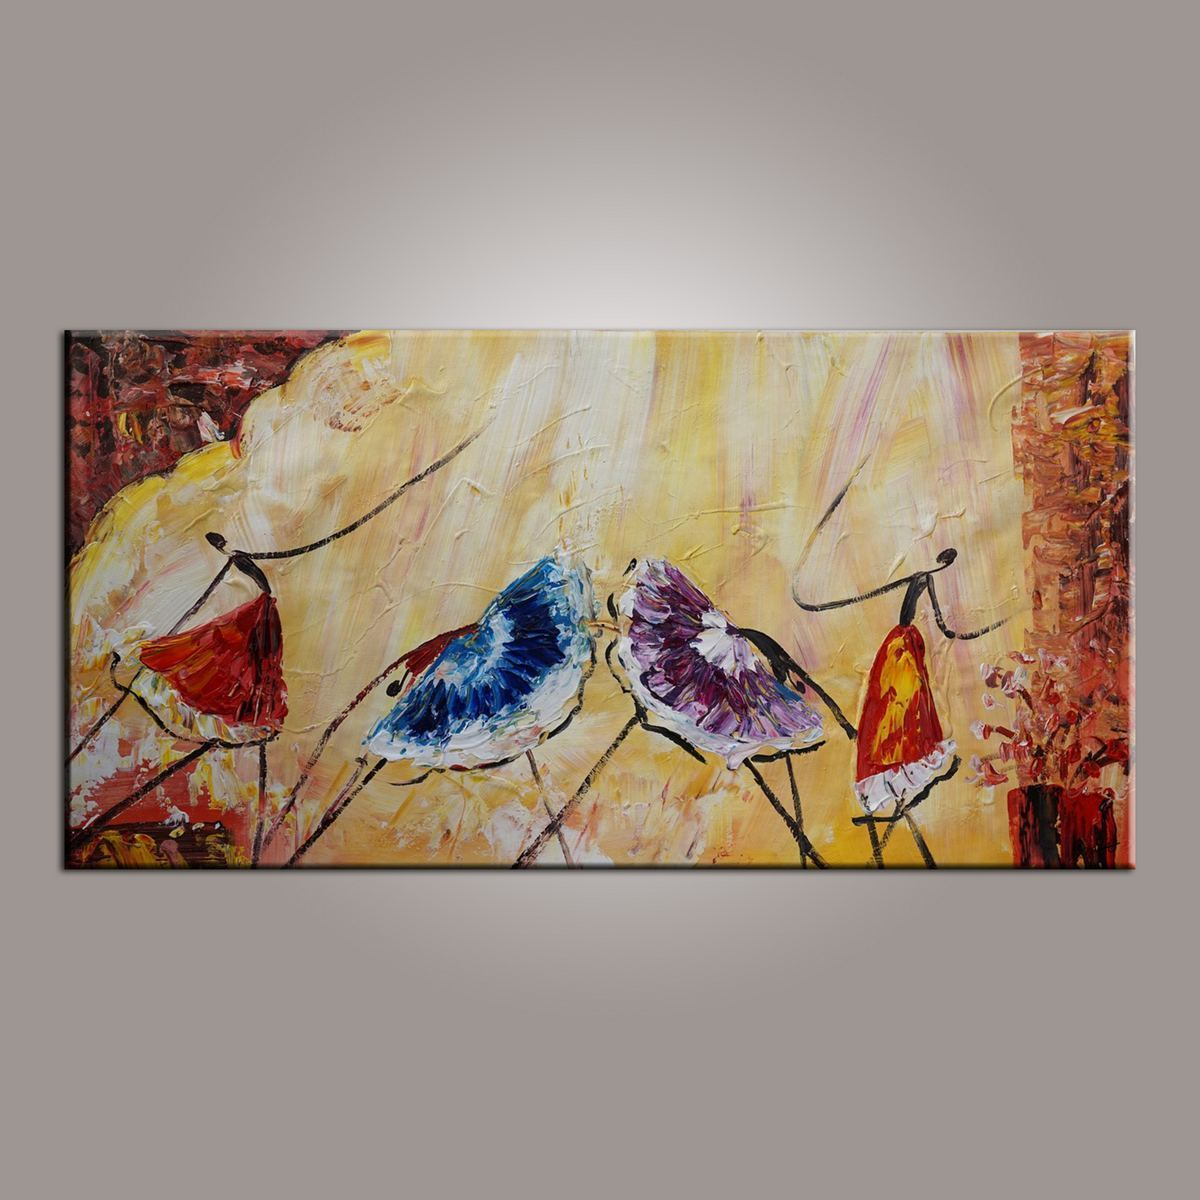 Ballet Dancer Art, Canvas Painting, Abstract Wall Art, Wall Hanging, Bedroom Wall Art, Modern Art, Painting for Sale-artworkcanvas